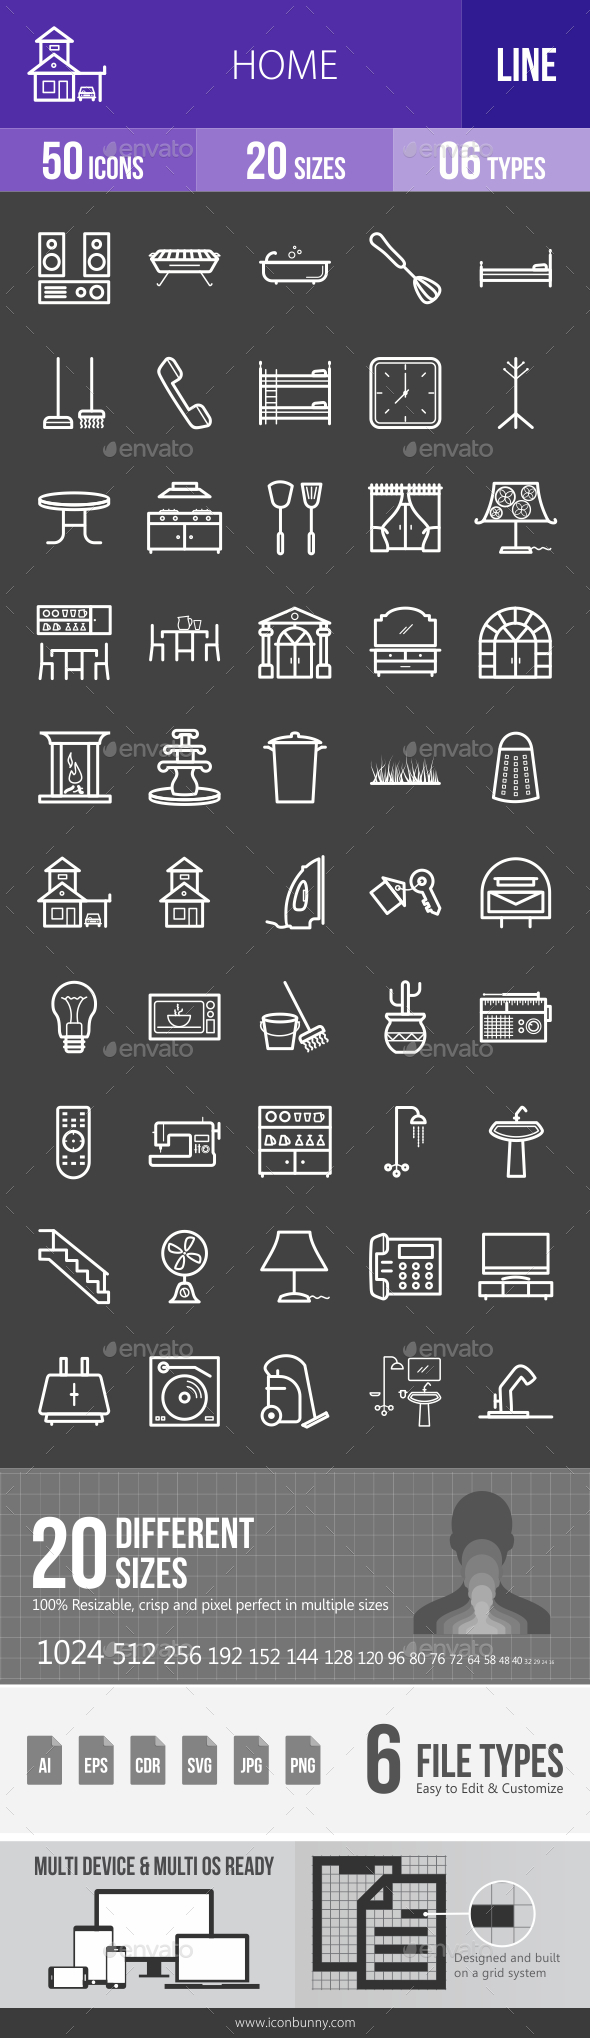 Home Line Inverted Icons - Icons